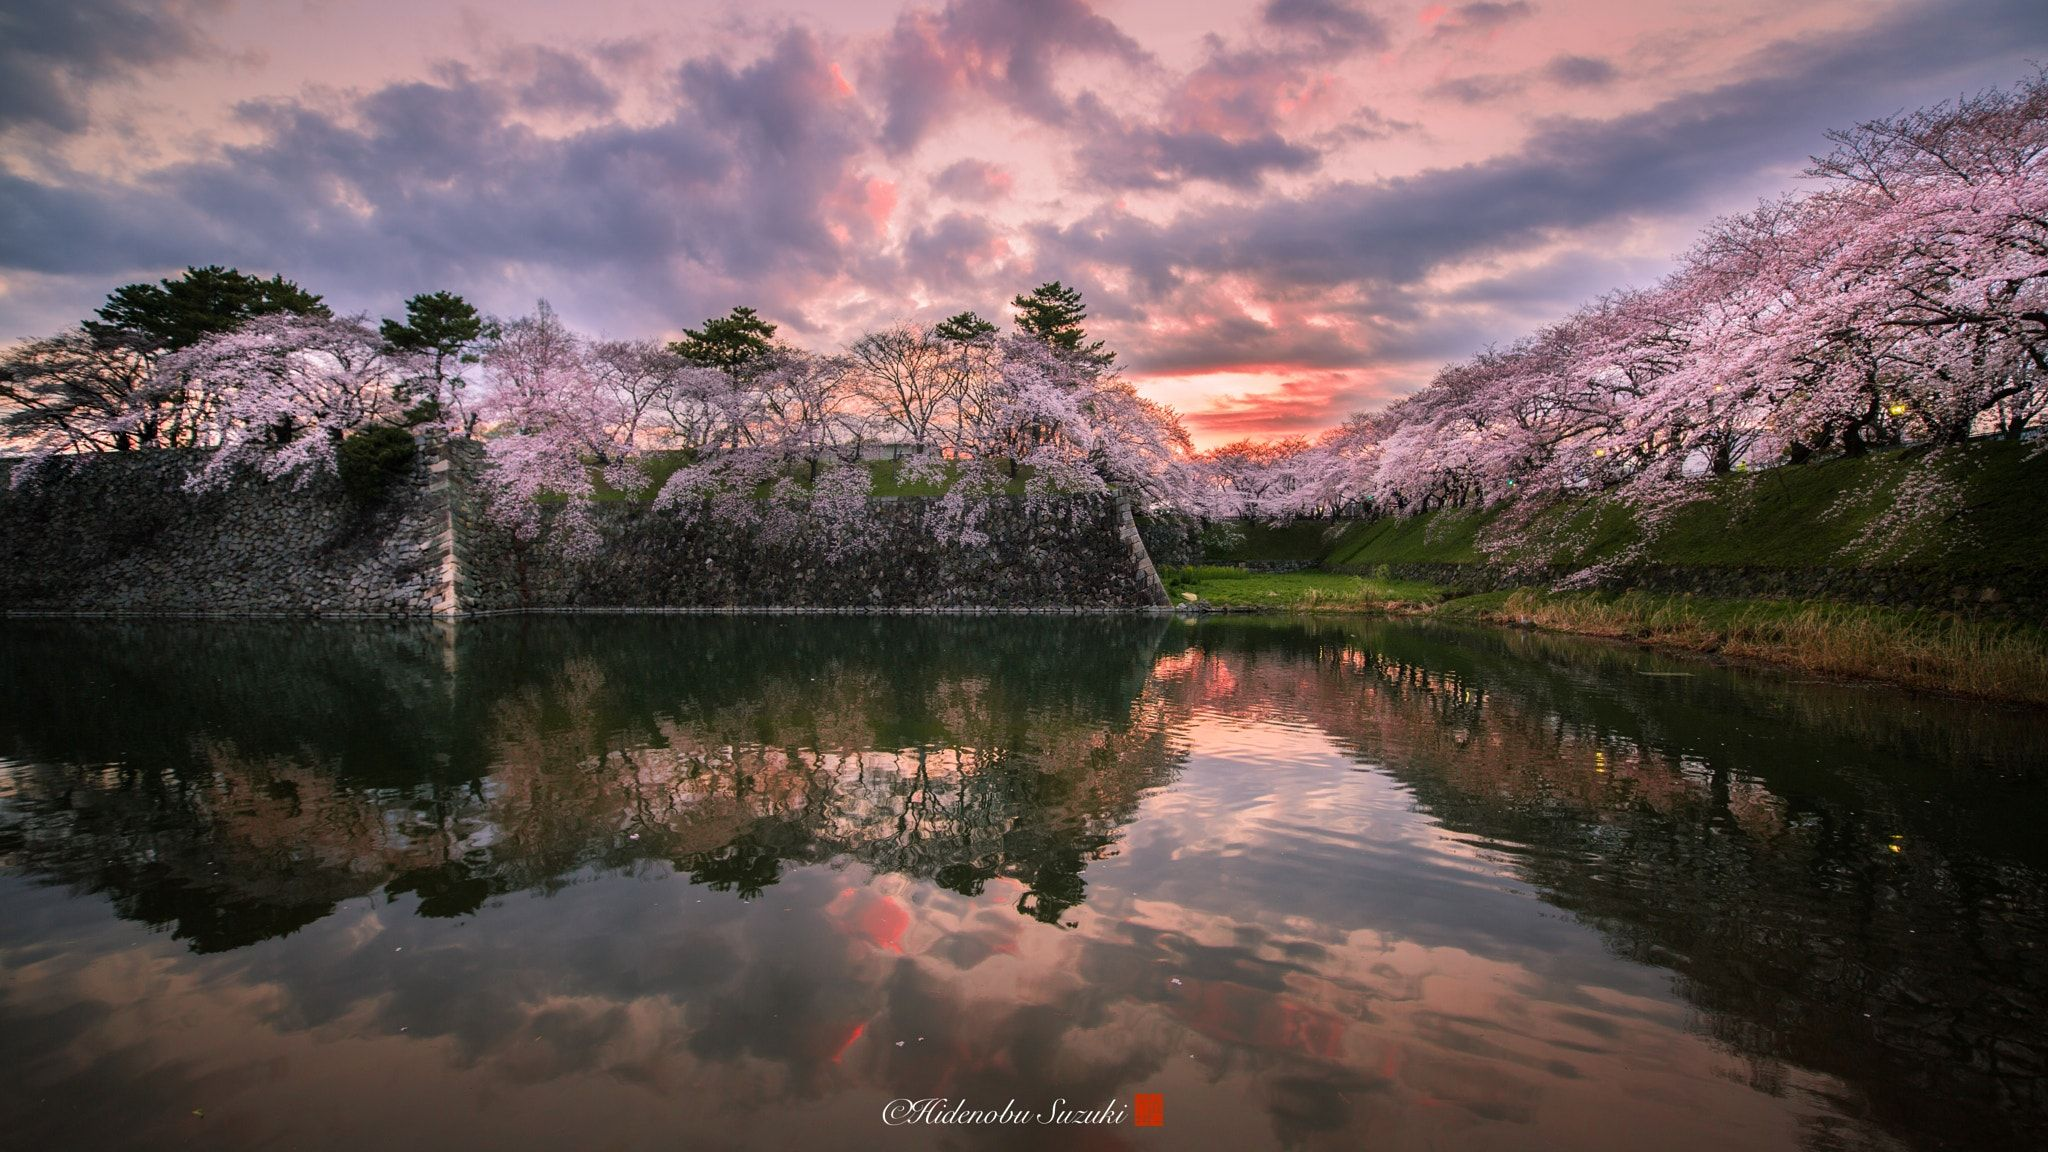 When Sakura Are Blooming The Outer Wall Of Nagoya Castle This - Calming photos of japans landscapes captured by hidenobu suzuki